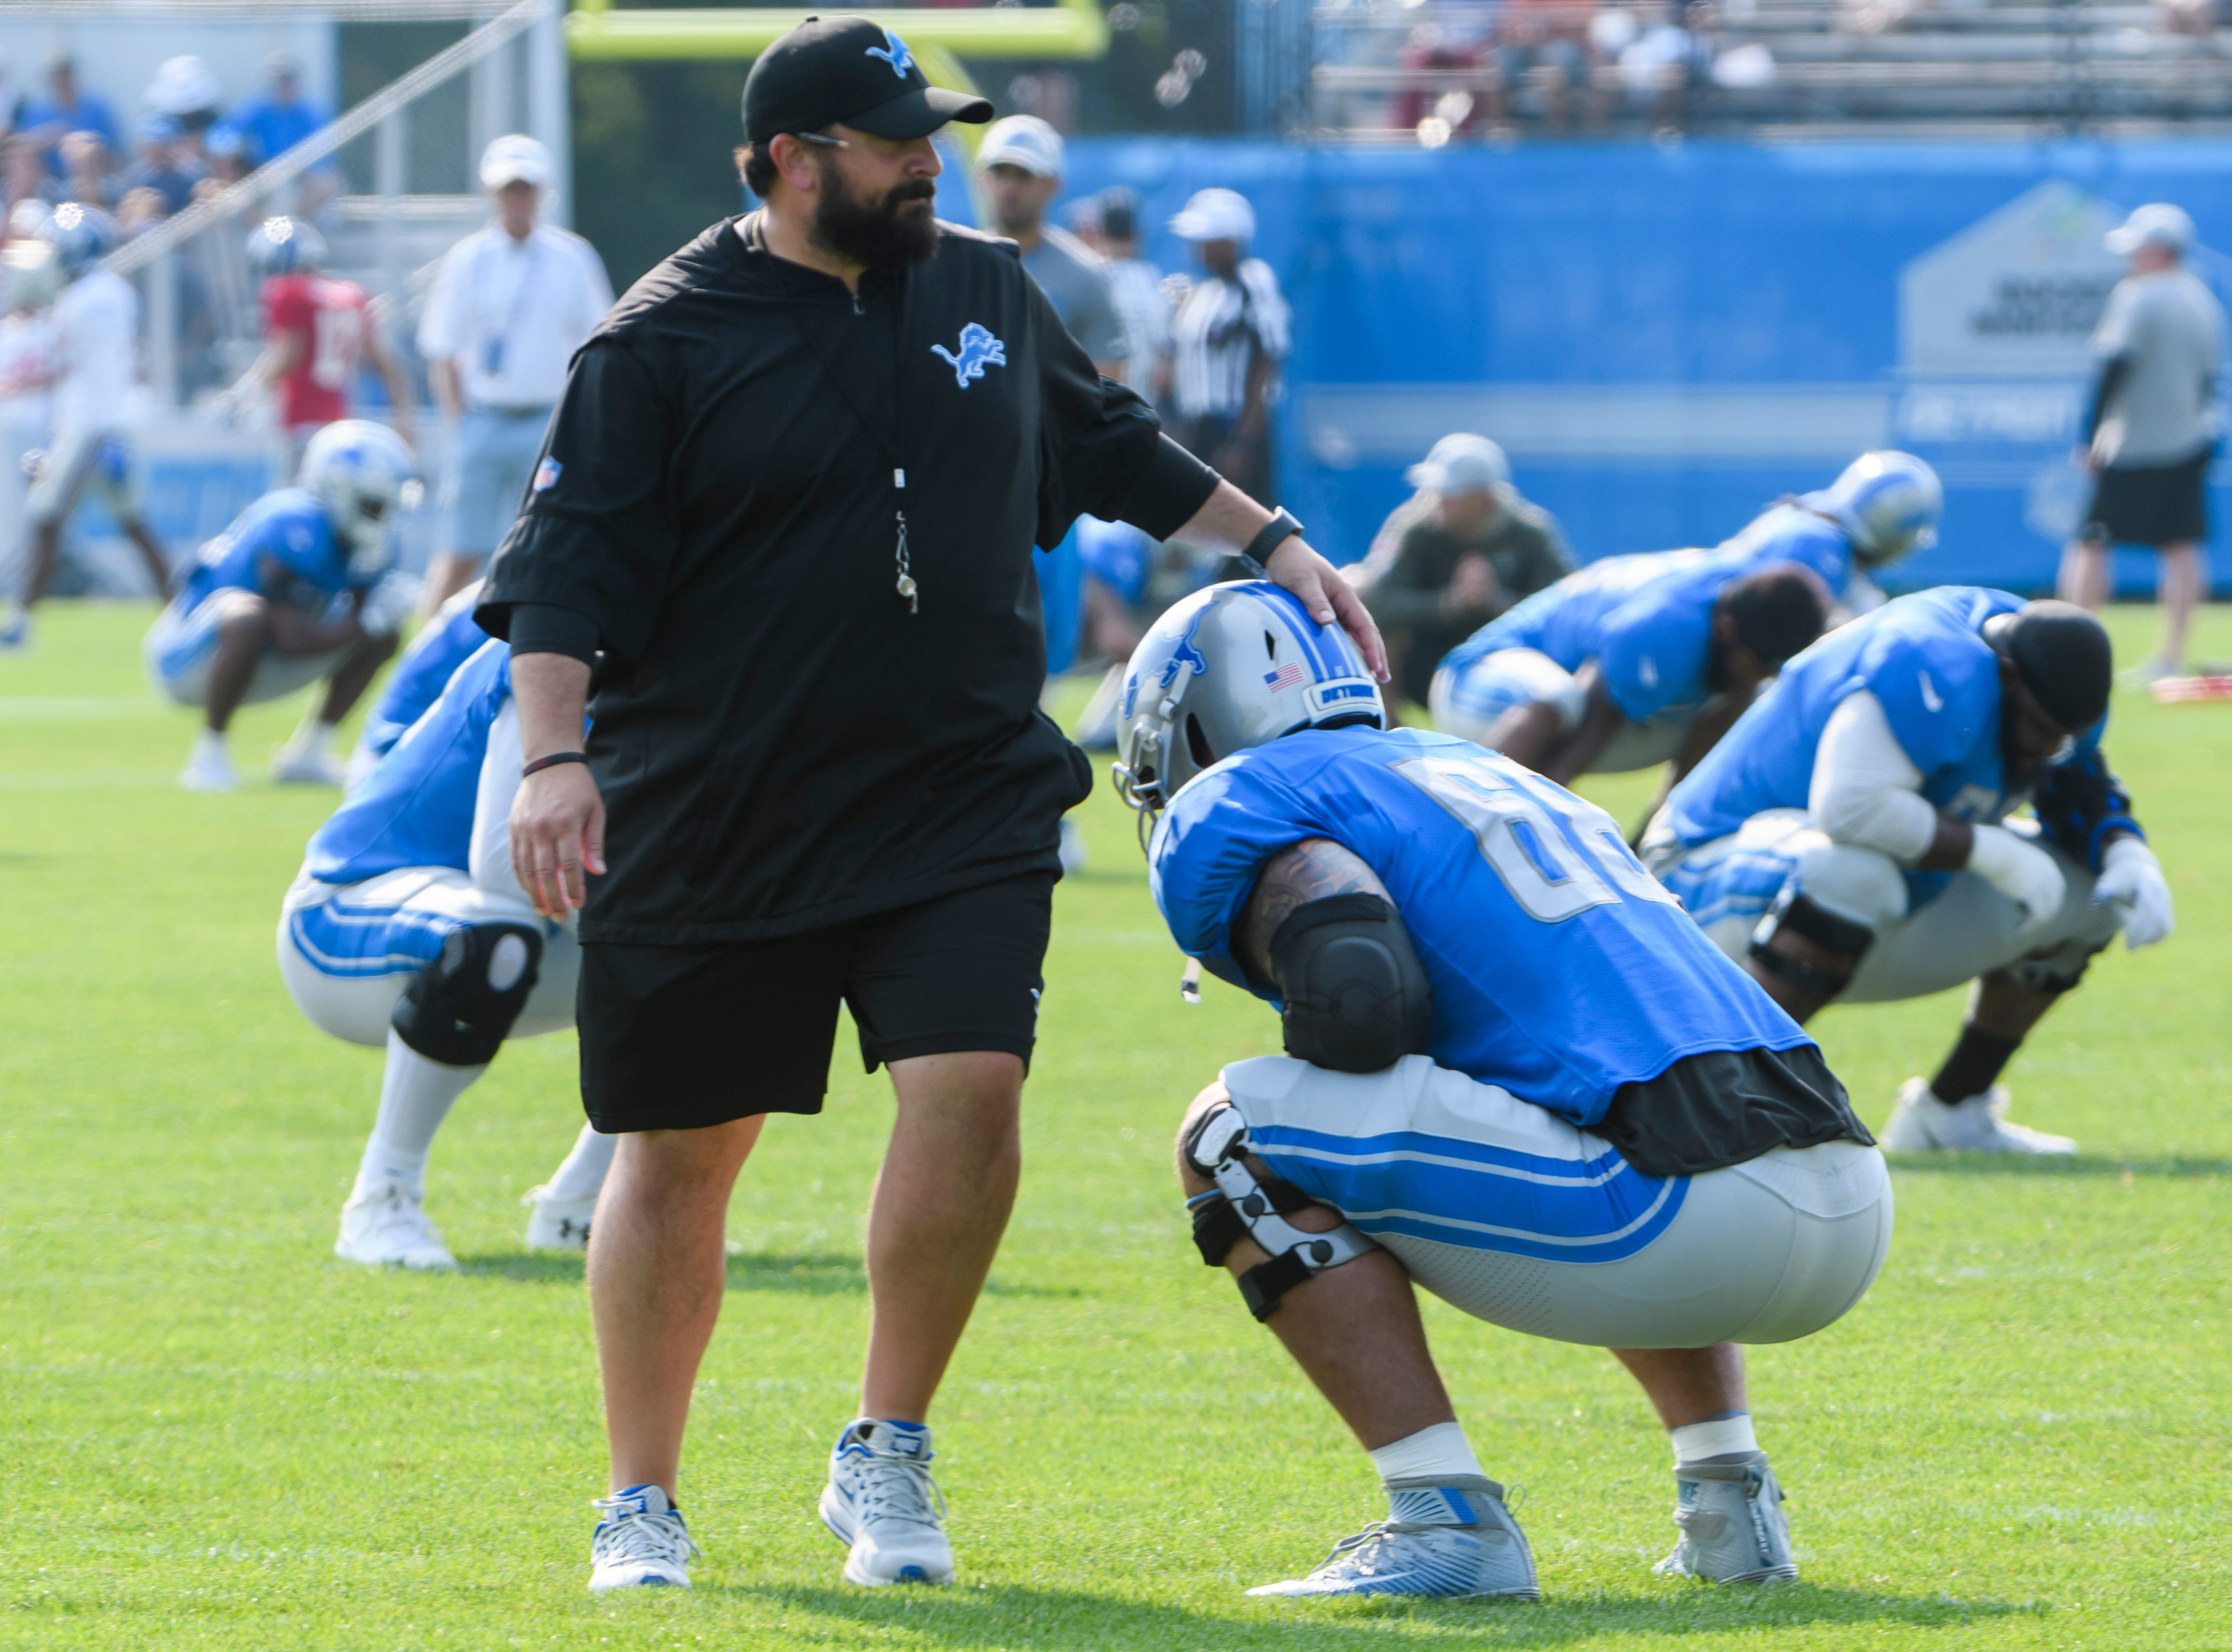 Lions head coach Matt Patricia says hello to tackle Taylor Decker during warmups.